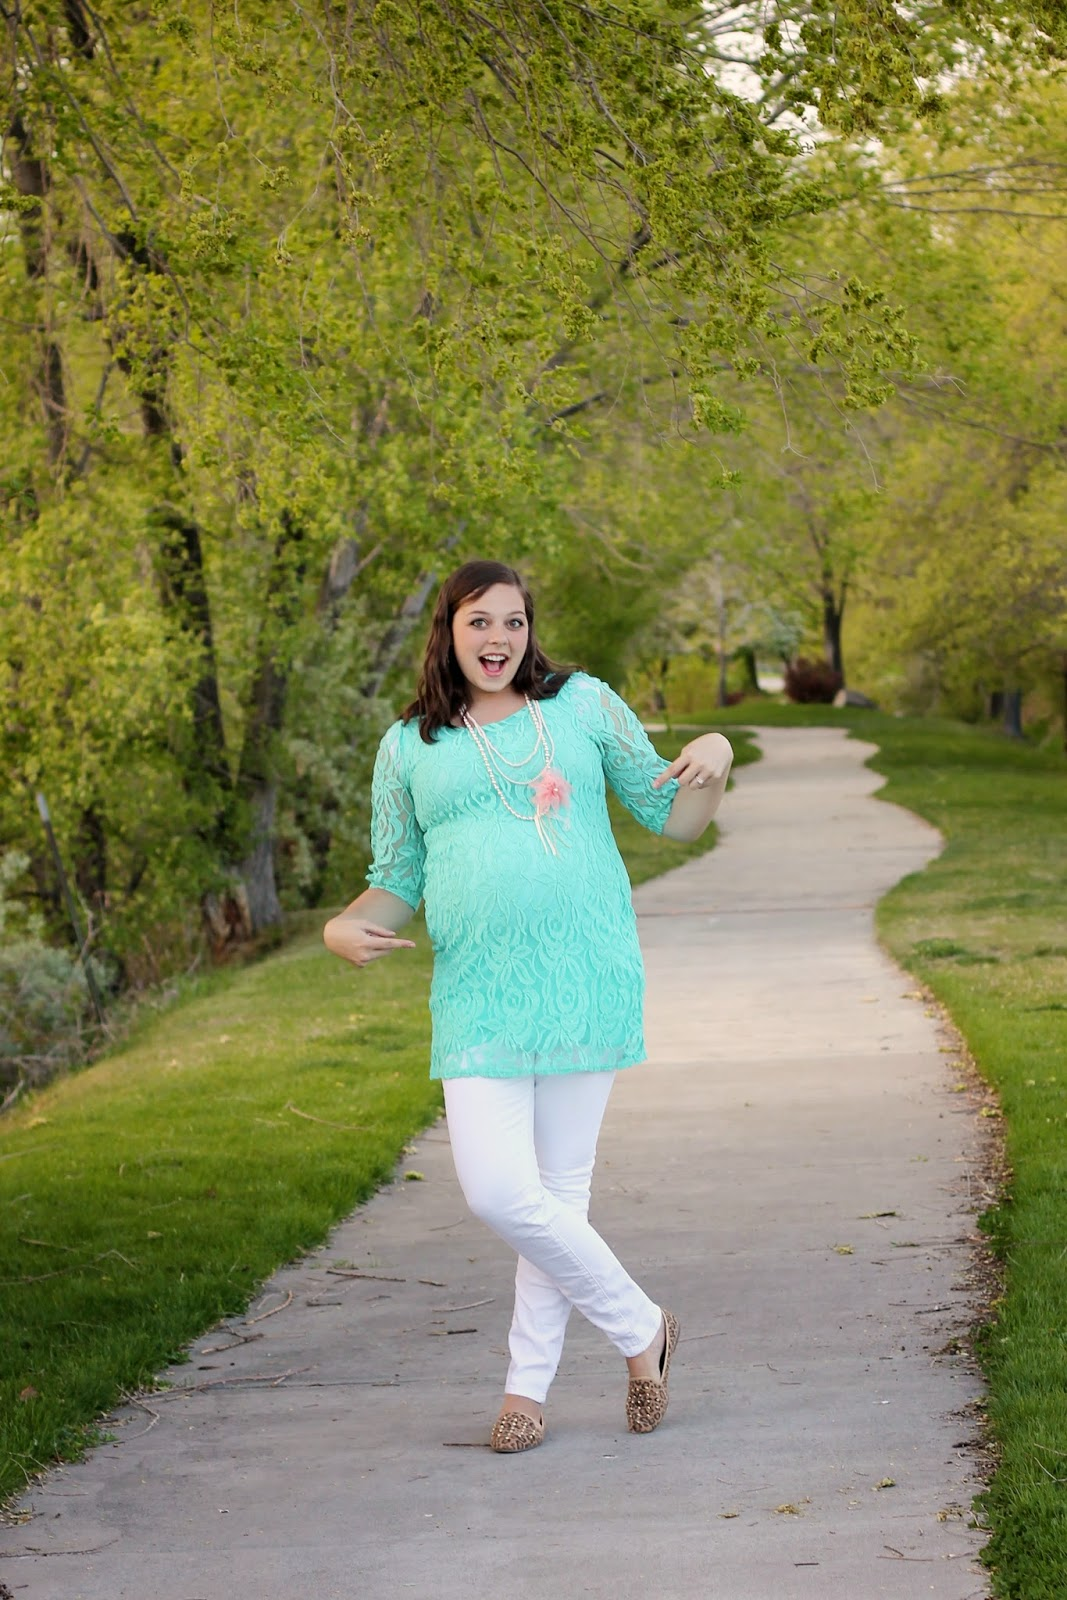 Silver lining finally cute maternity clothes a pinkblush and now for an awesome giveaway pinkblush maternity is giving away a 25 gift card to one lucky gal you dont have to be pregnant to enter this would ombrellifo Choice Image